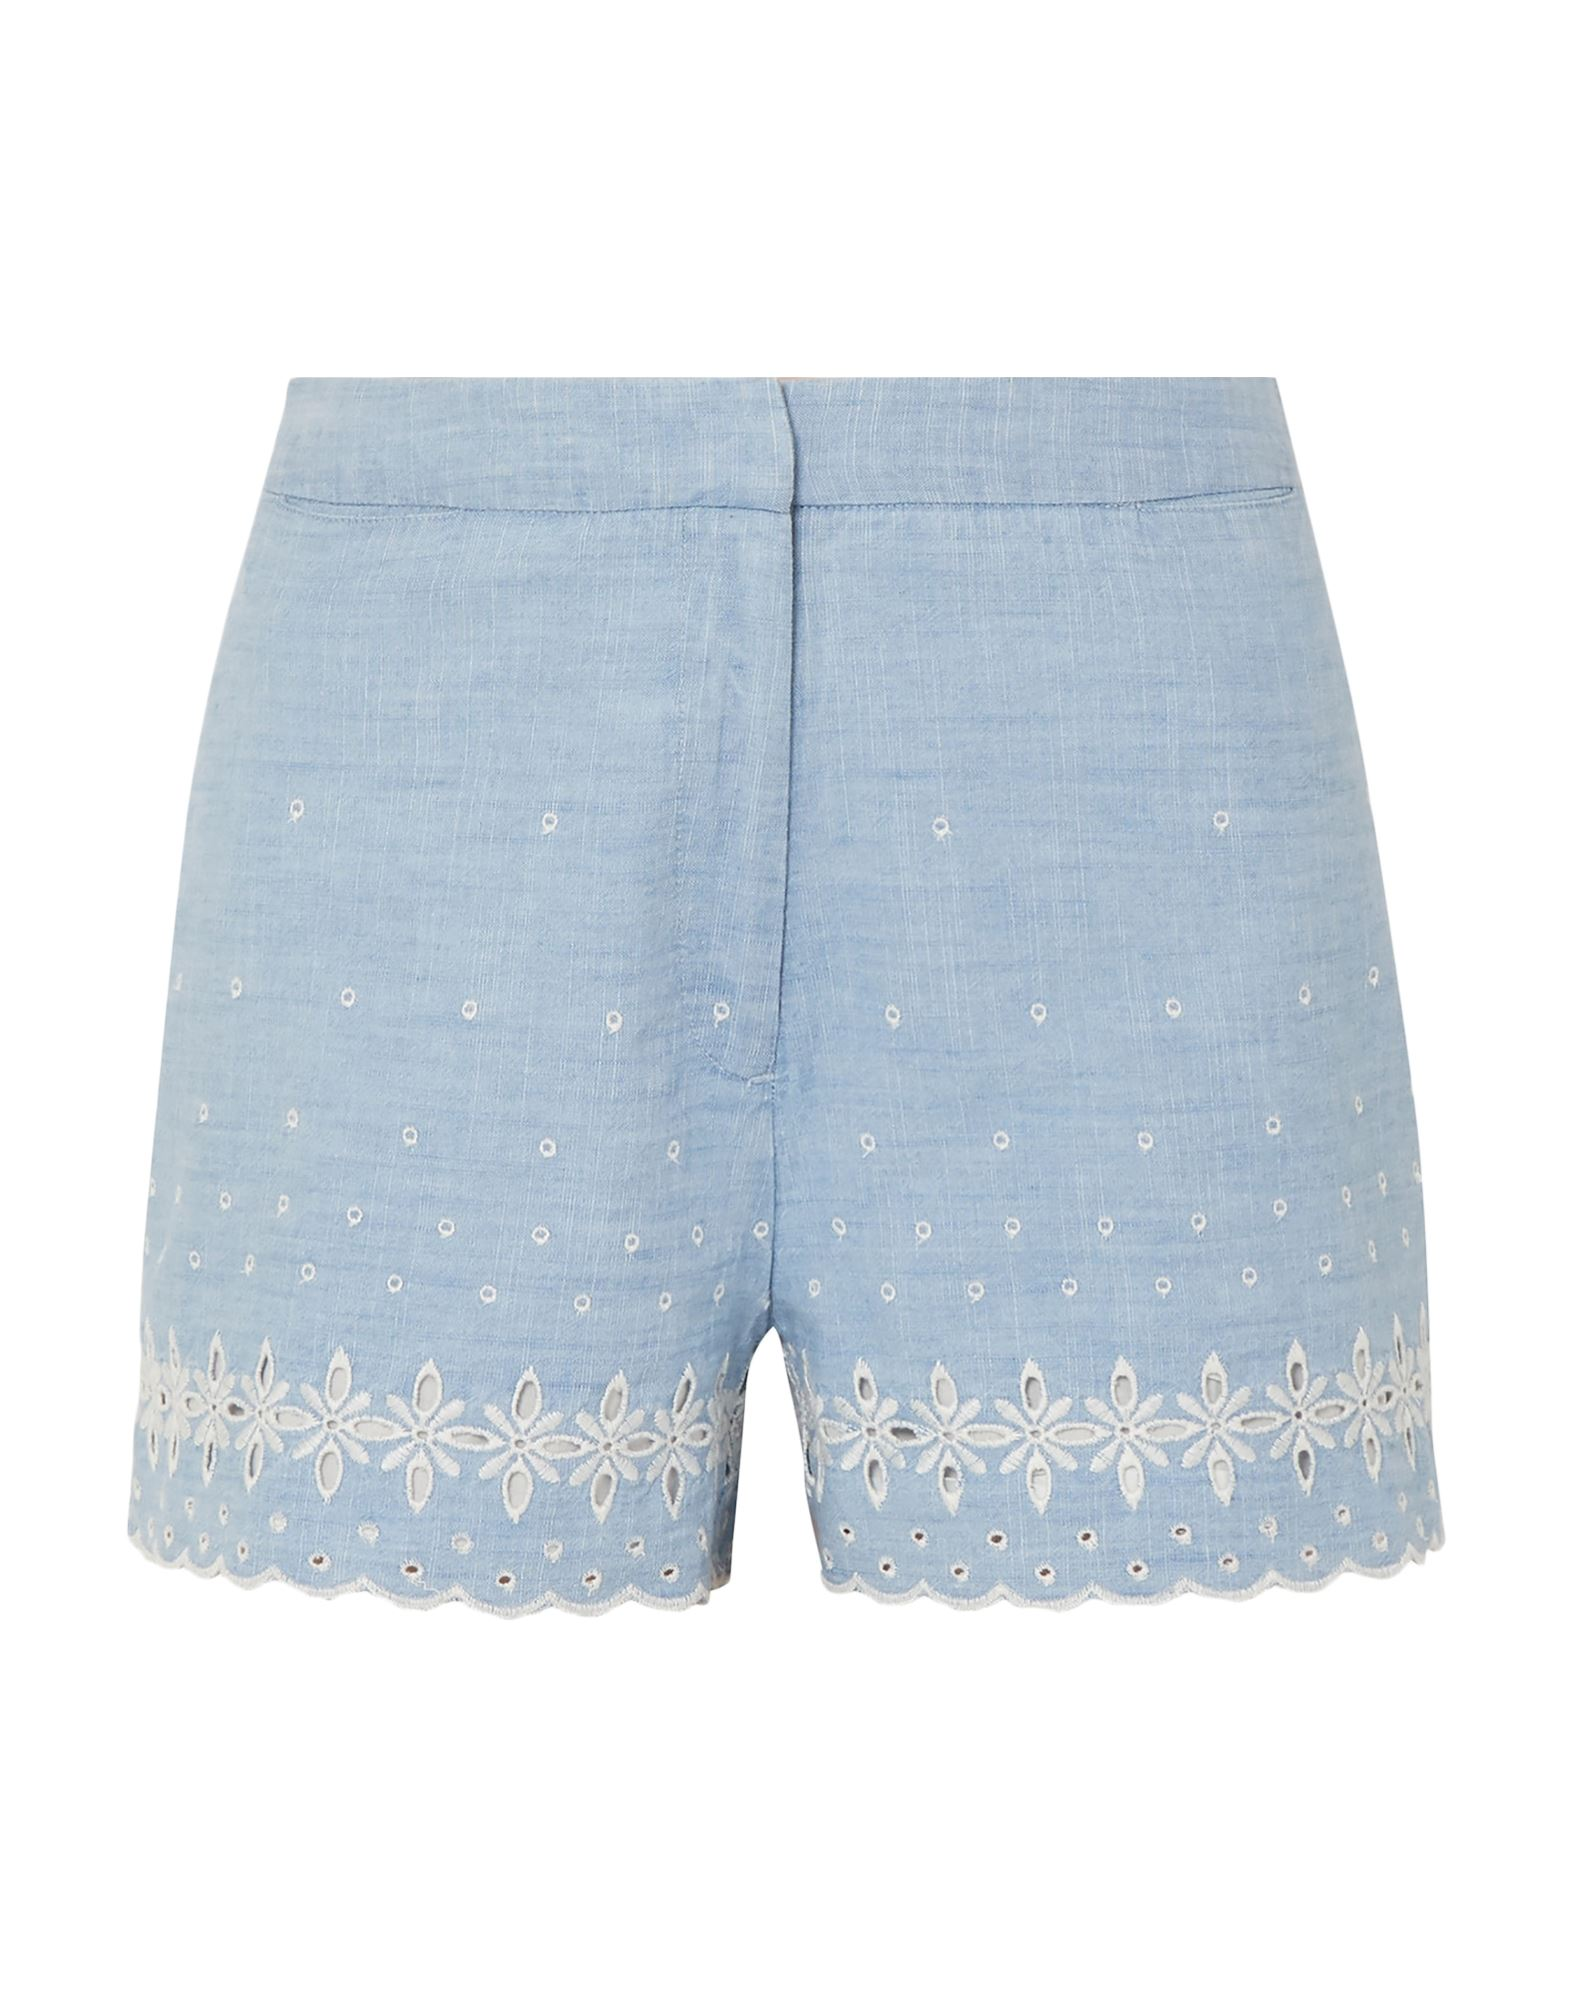 J.CREW Shorts. plain weave, solid color, embroidered detailing, high waisted, regular fit, straight leg, hook-and-bar, zip, multipockets. 100% Cotton